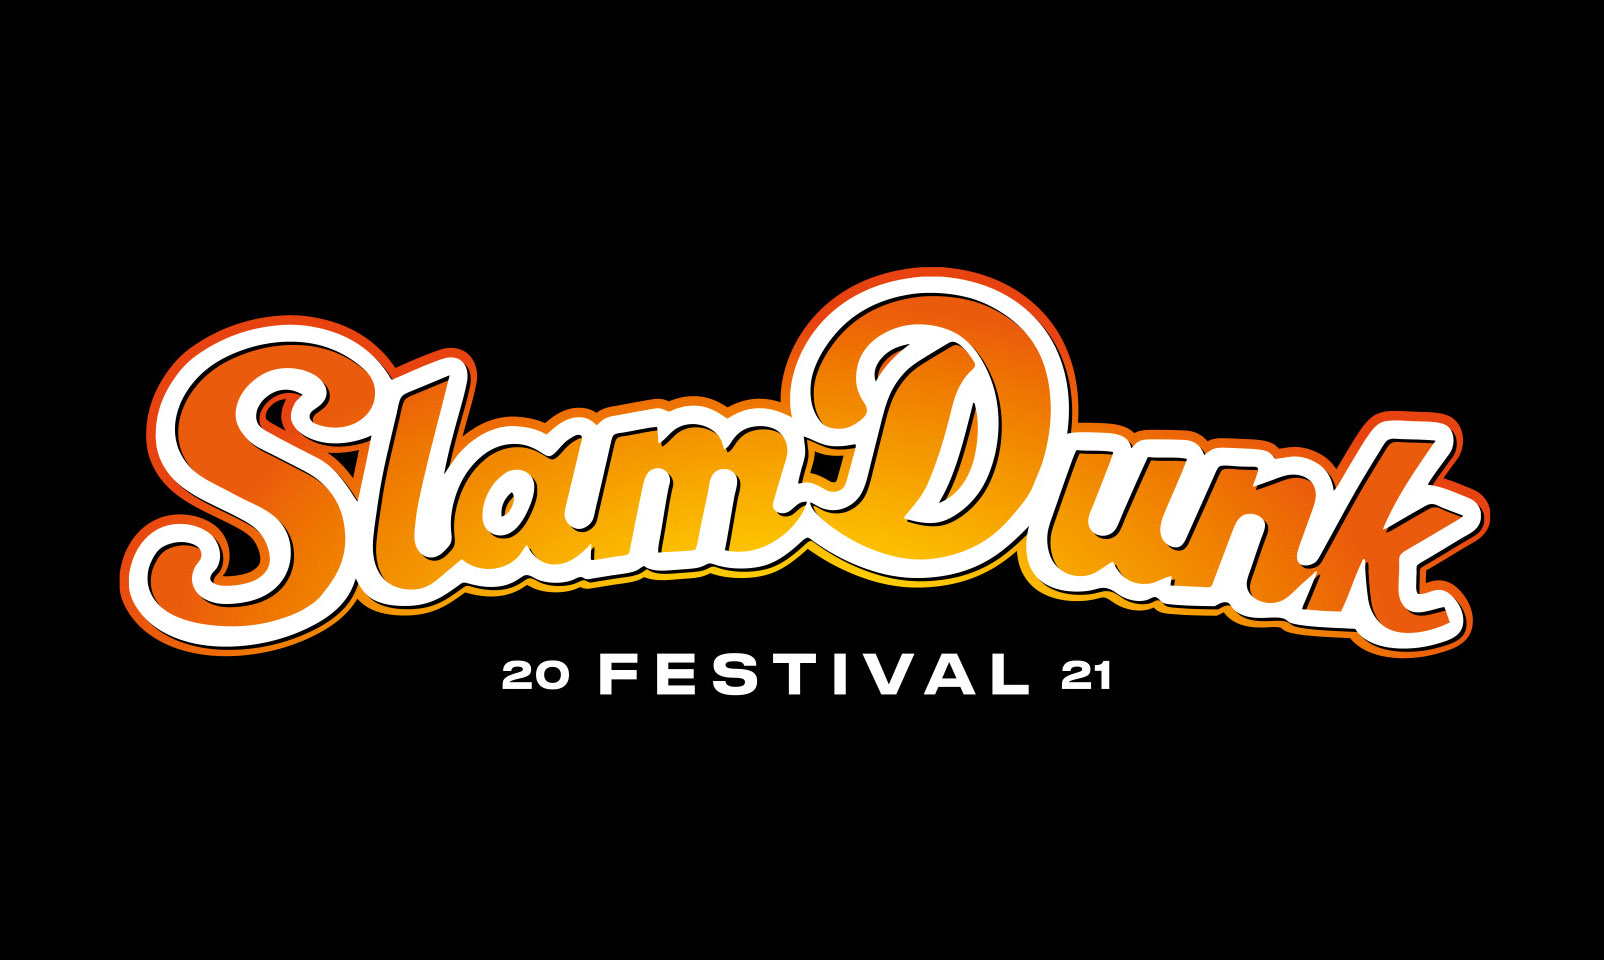 Slam Dunk Have Announced Who Will Be Playing The Rescheduled Dates Of The Festival In September